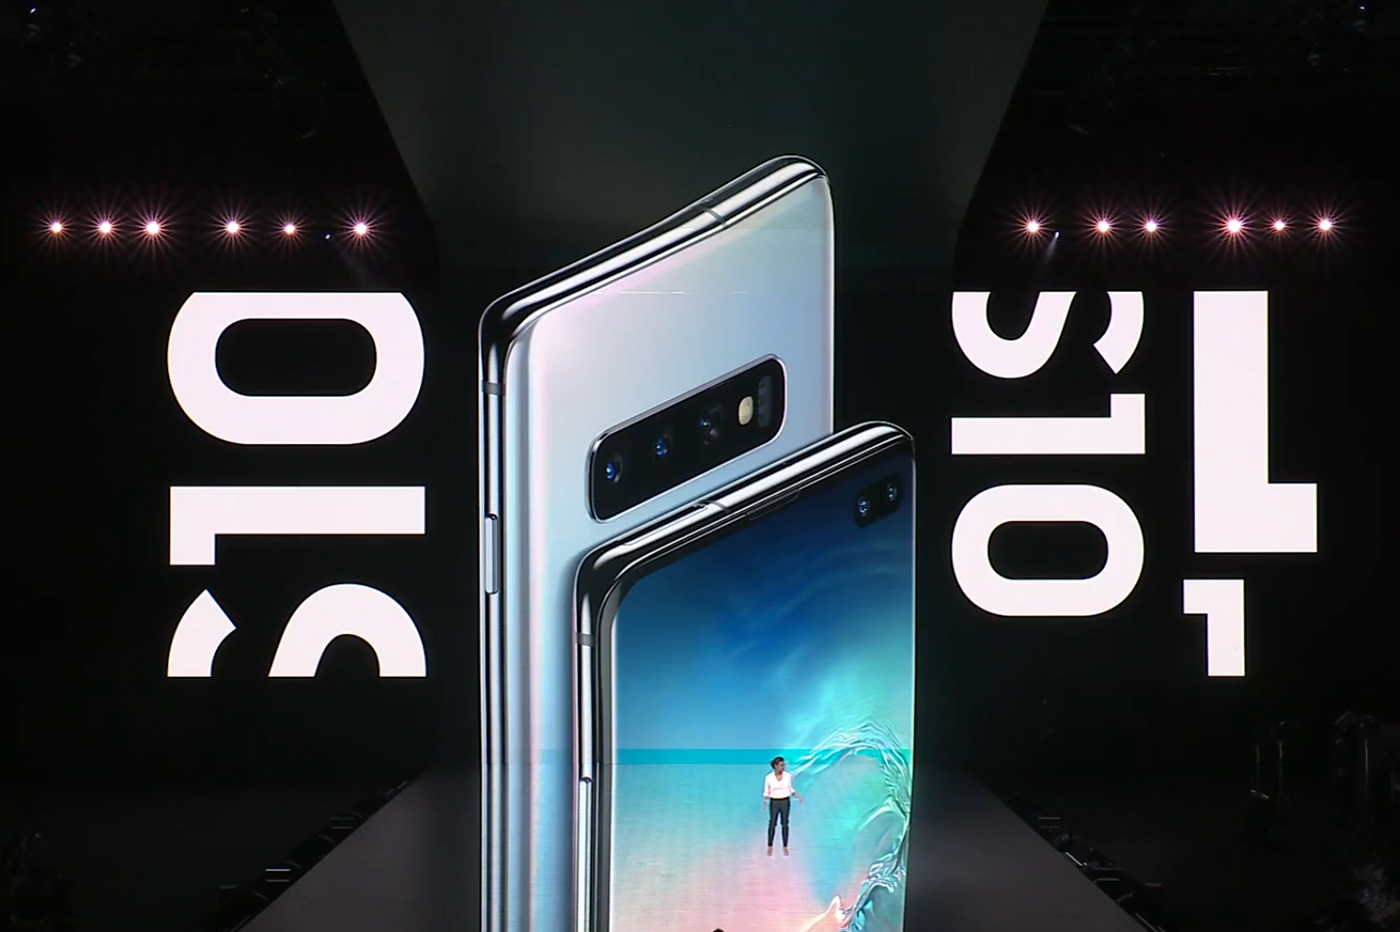 Samsung Galaxy S10 design